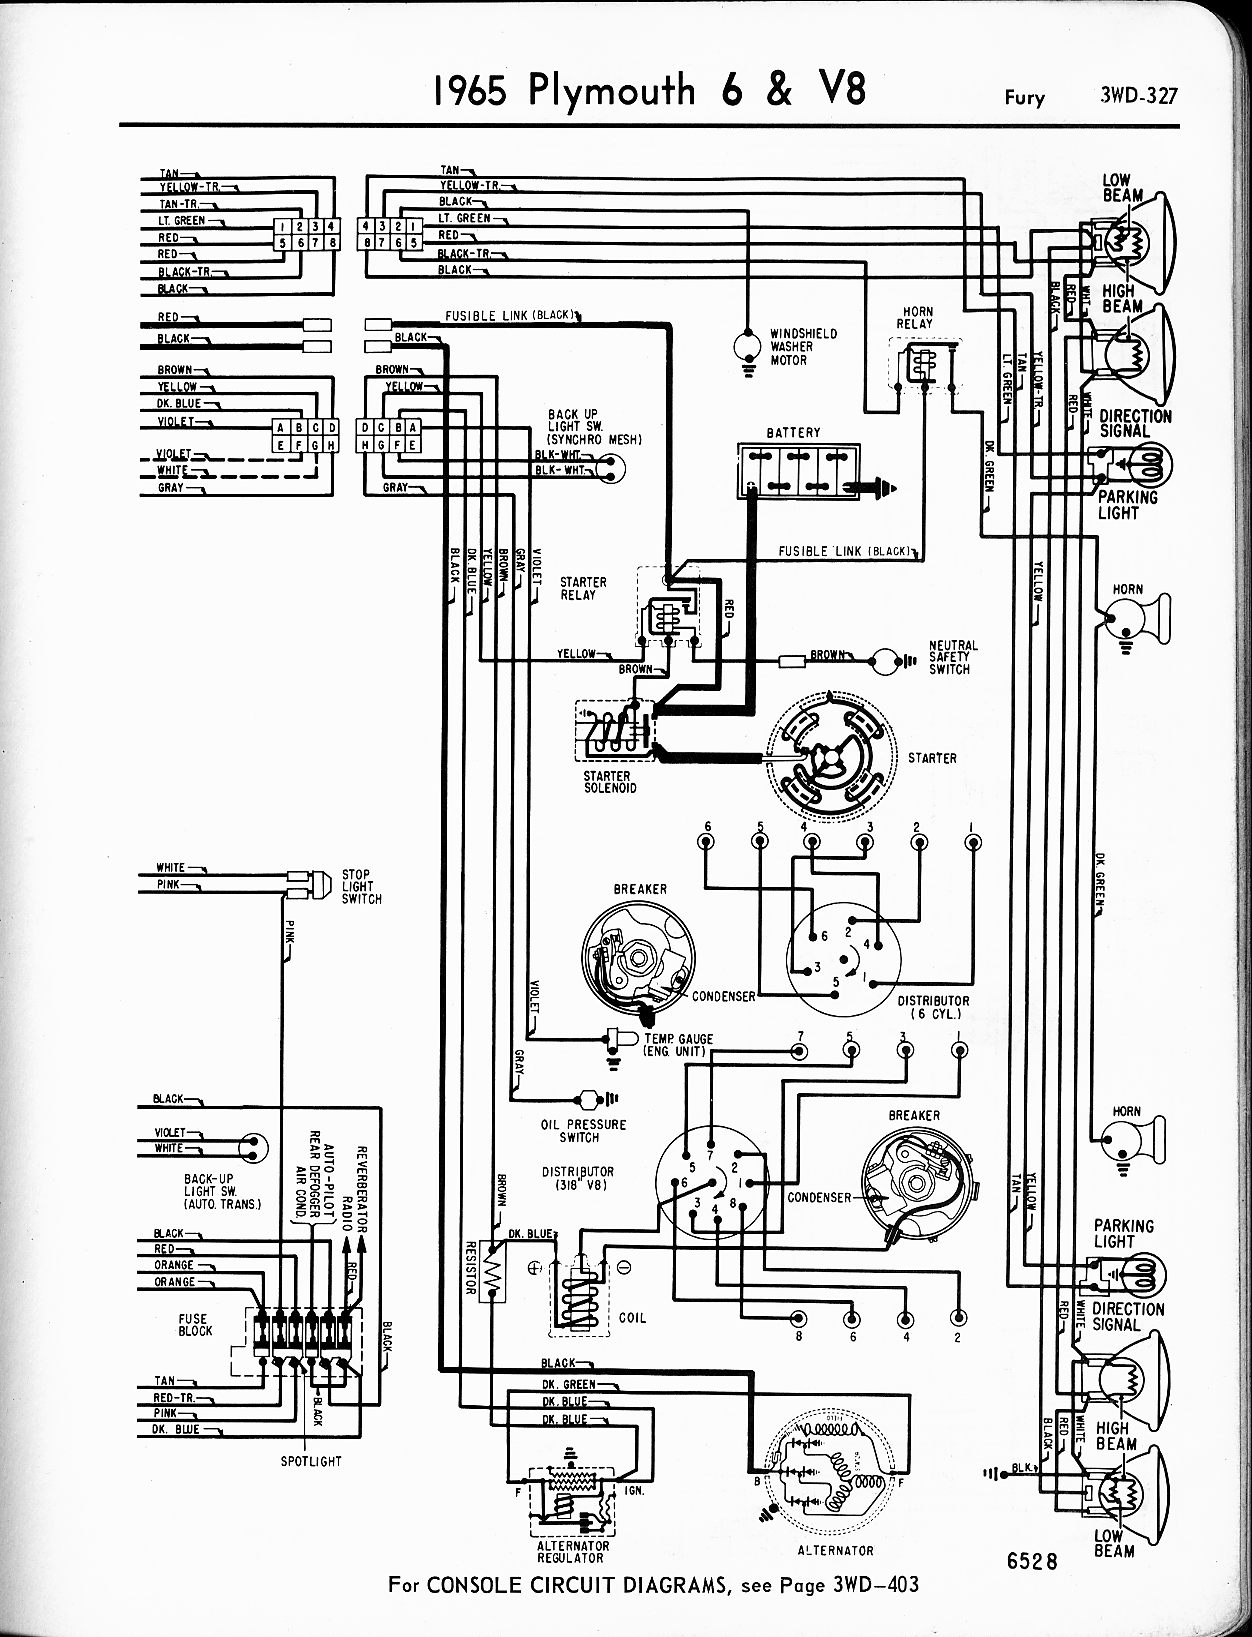 mwire5765 327 jpg 1956 1965 plymouth wiring the old car manual project 1965 plymouth 6 v8 fury left page